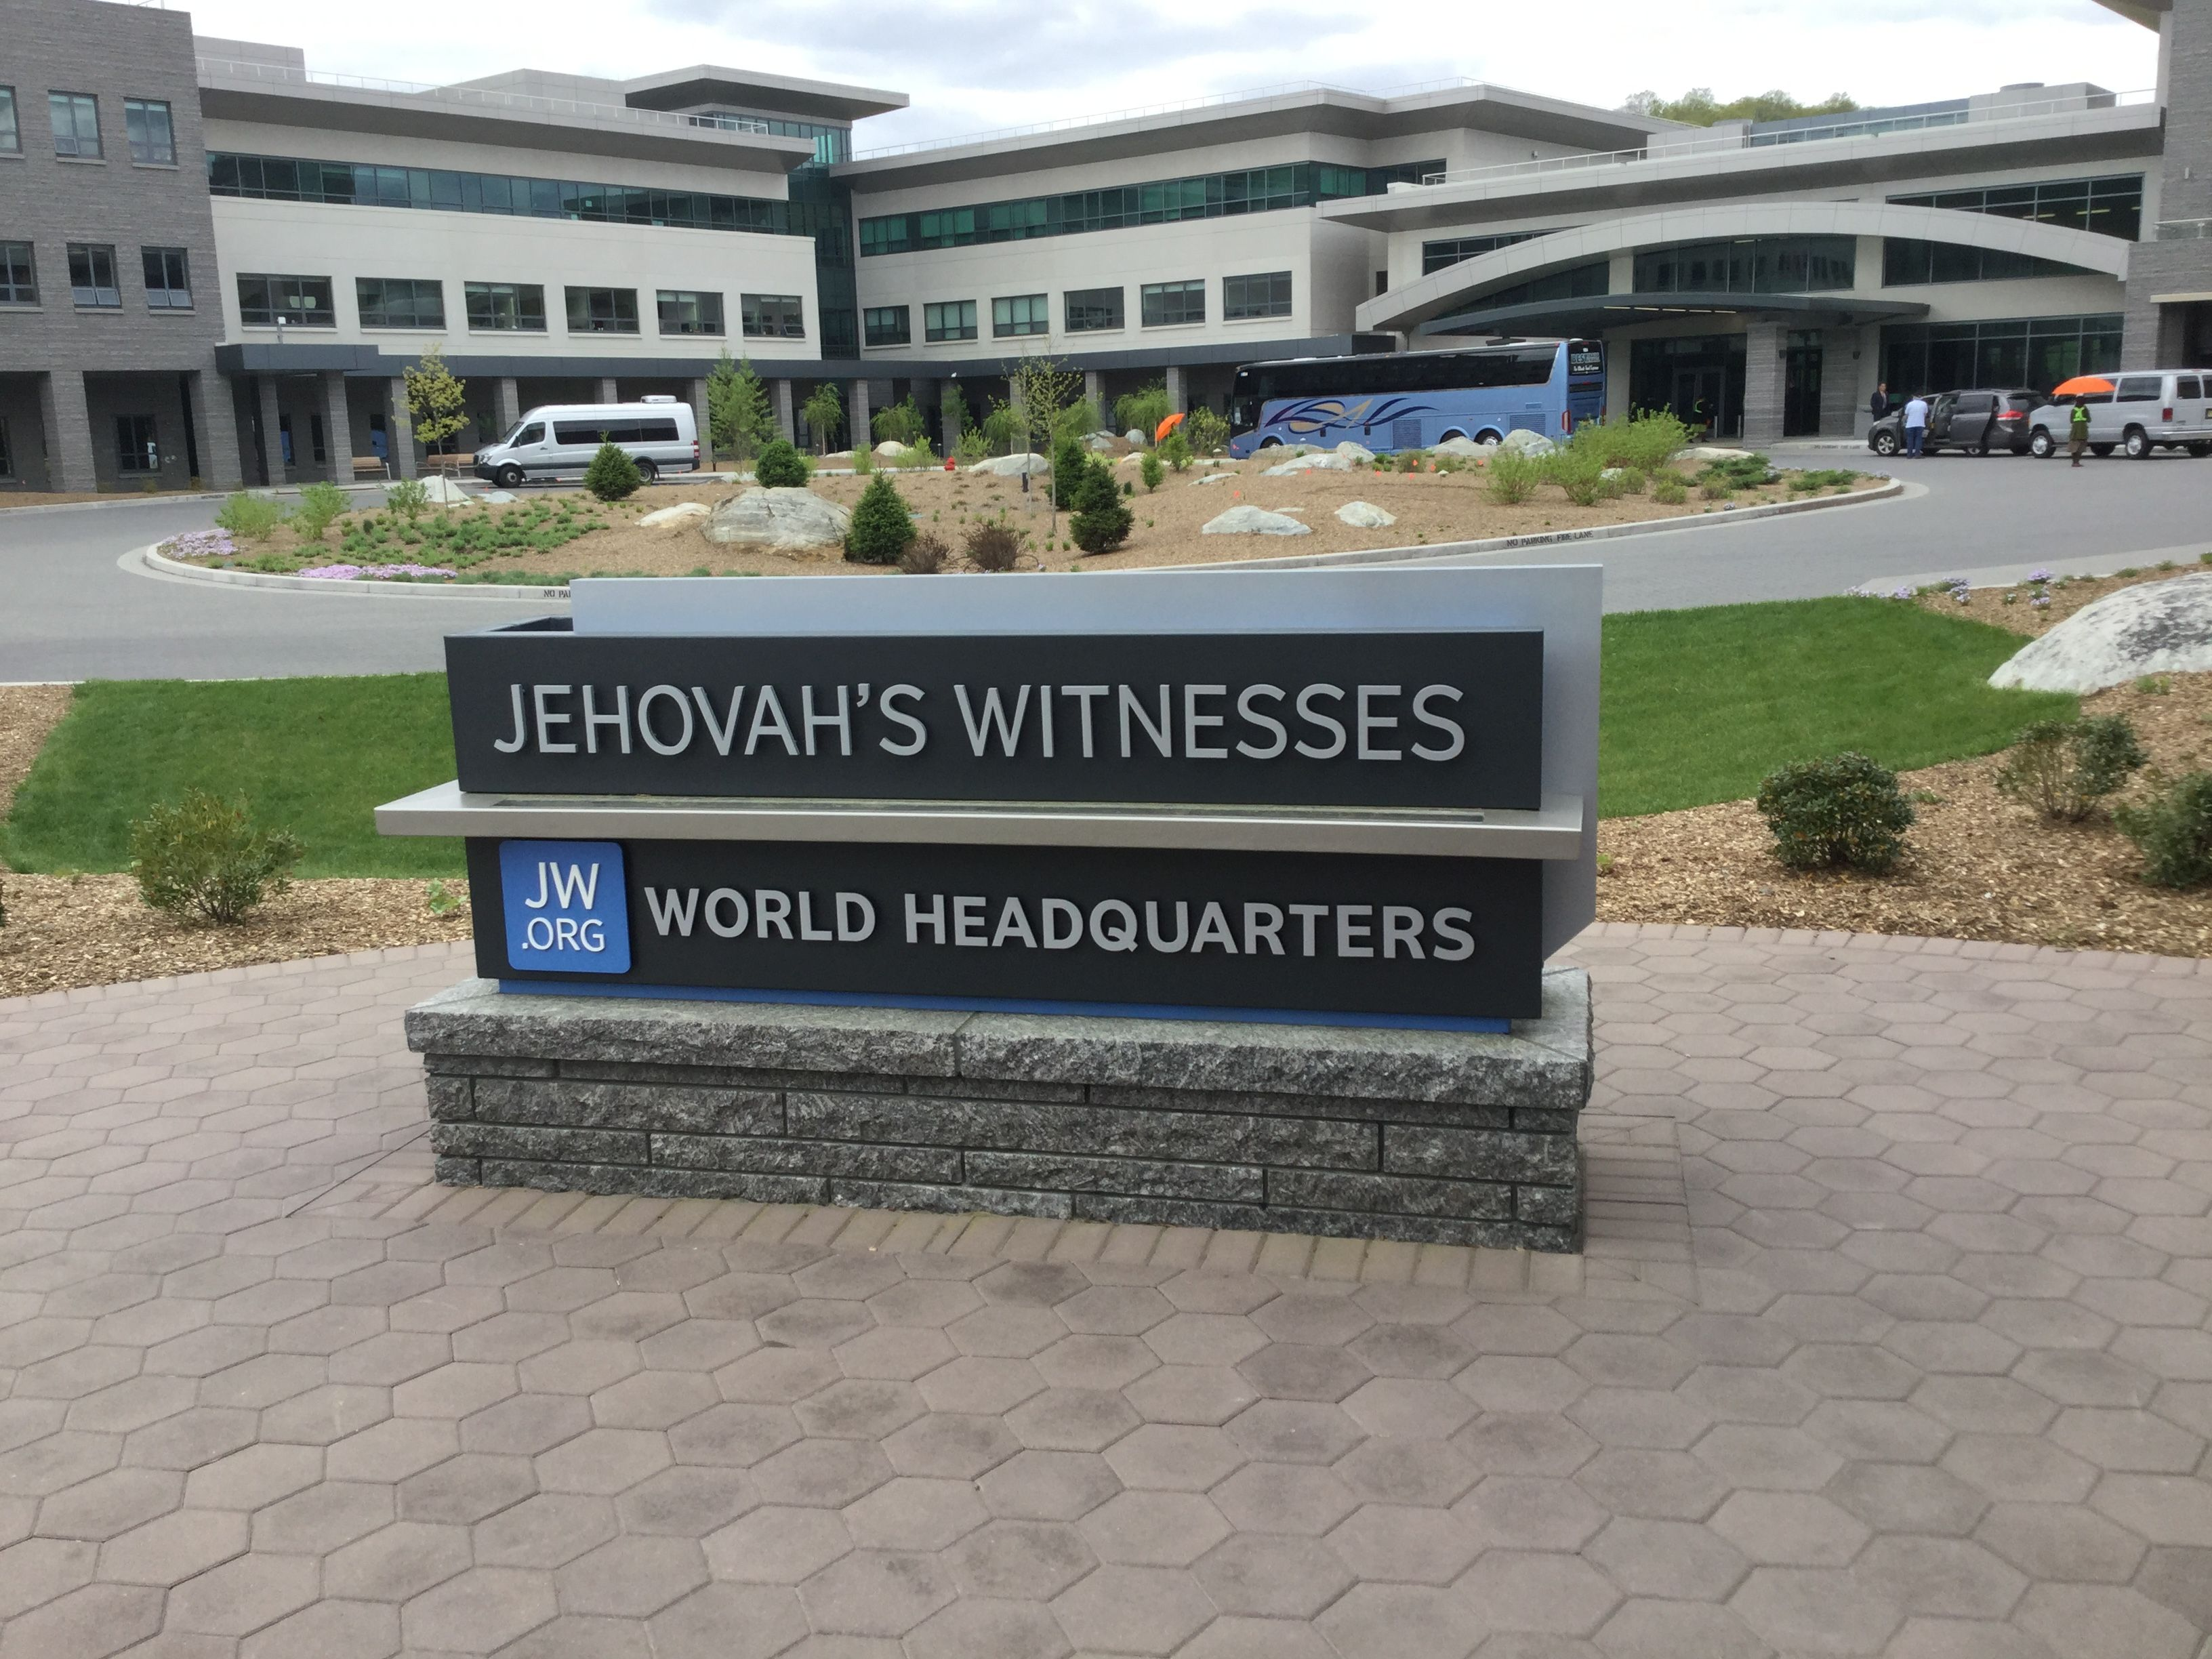 Warwick new world headquarters of jehovahs witnesses all about warwick new world headquarters of jehovahs witnesses sciox Choice Image